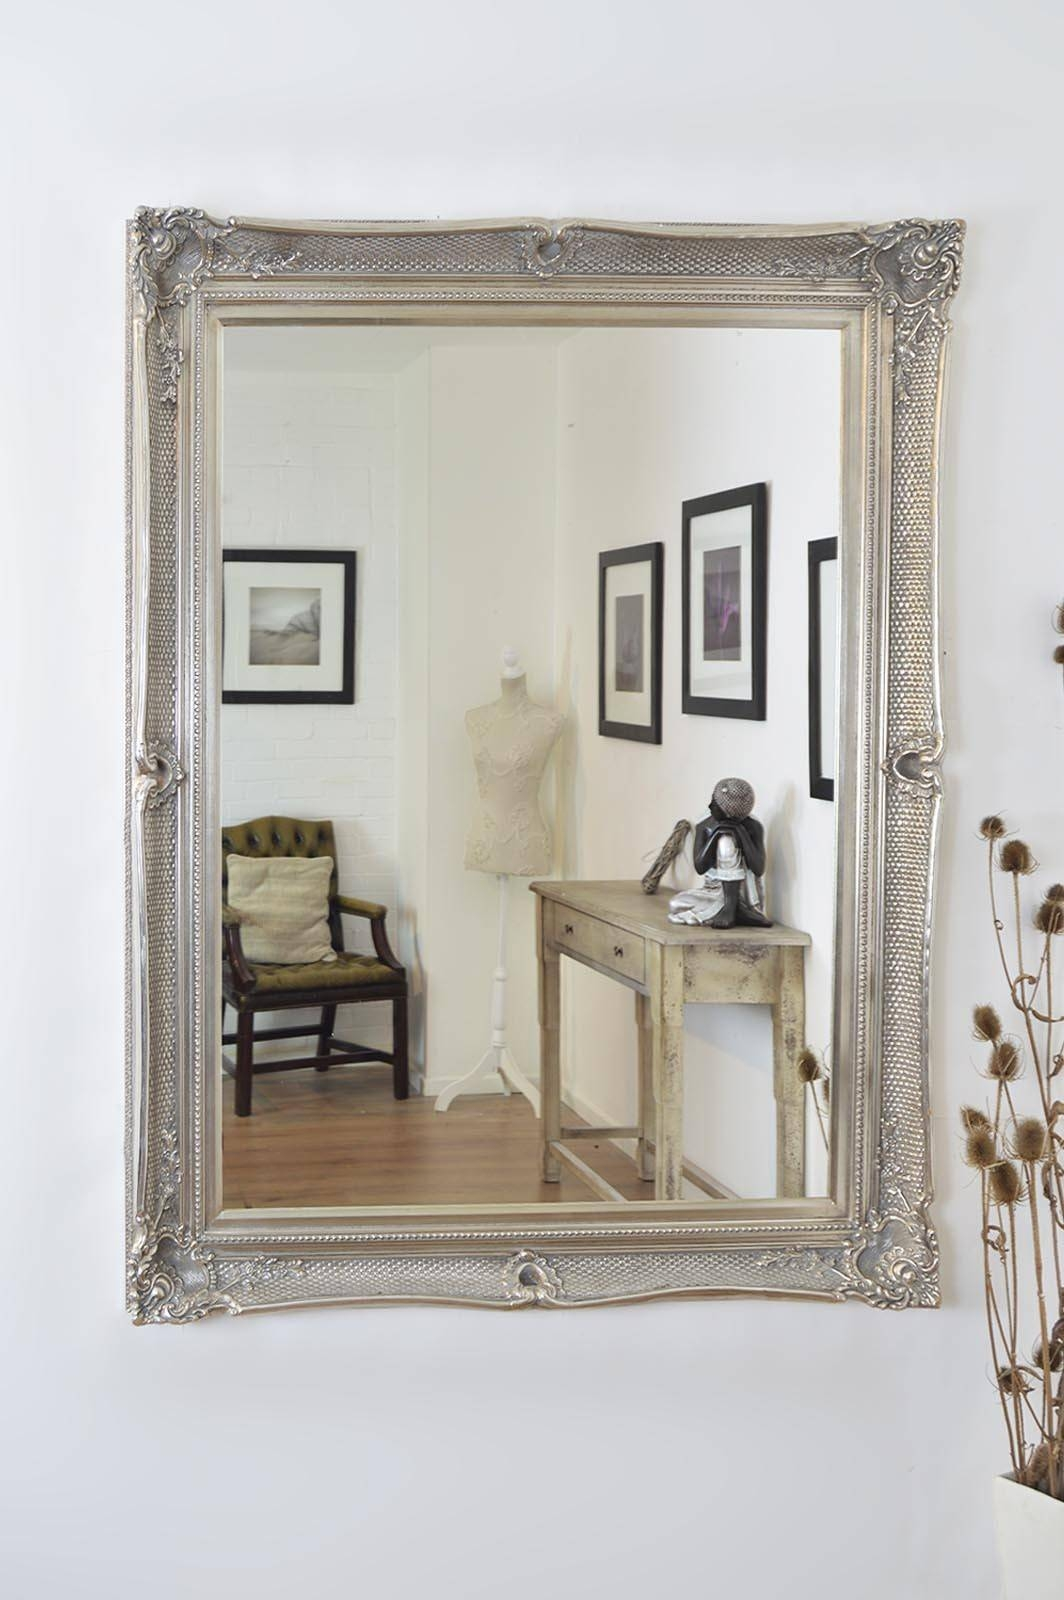 Ergonomic Shabby Chic Bathroom Mirror With Shelf Hd Pictures Of within Shabby Chic Mirrors With Shelf (Image 6 of 15)